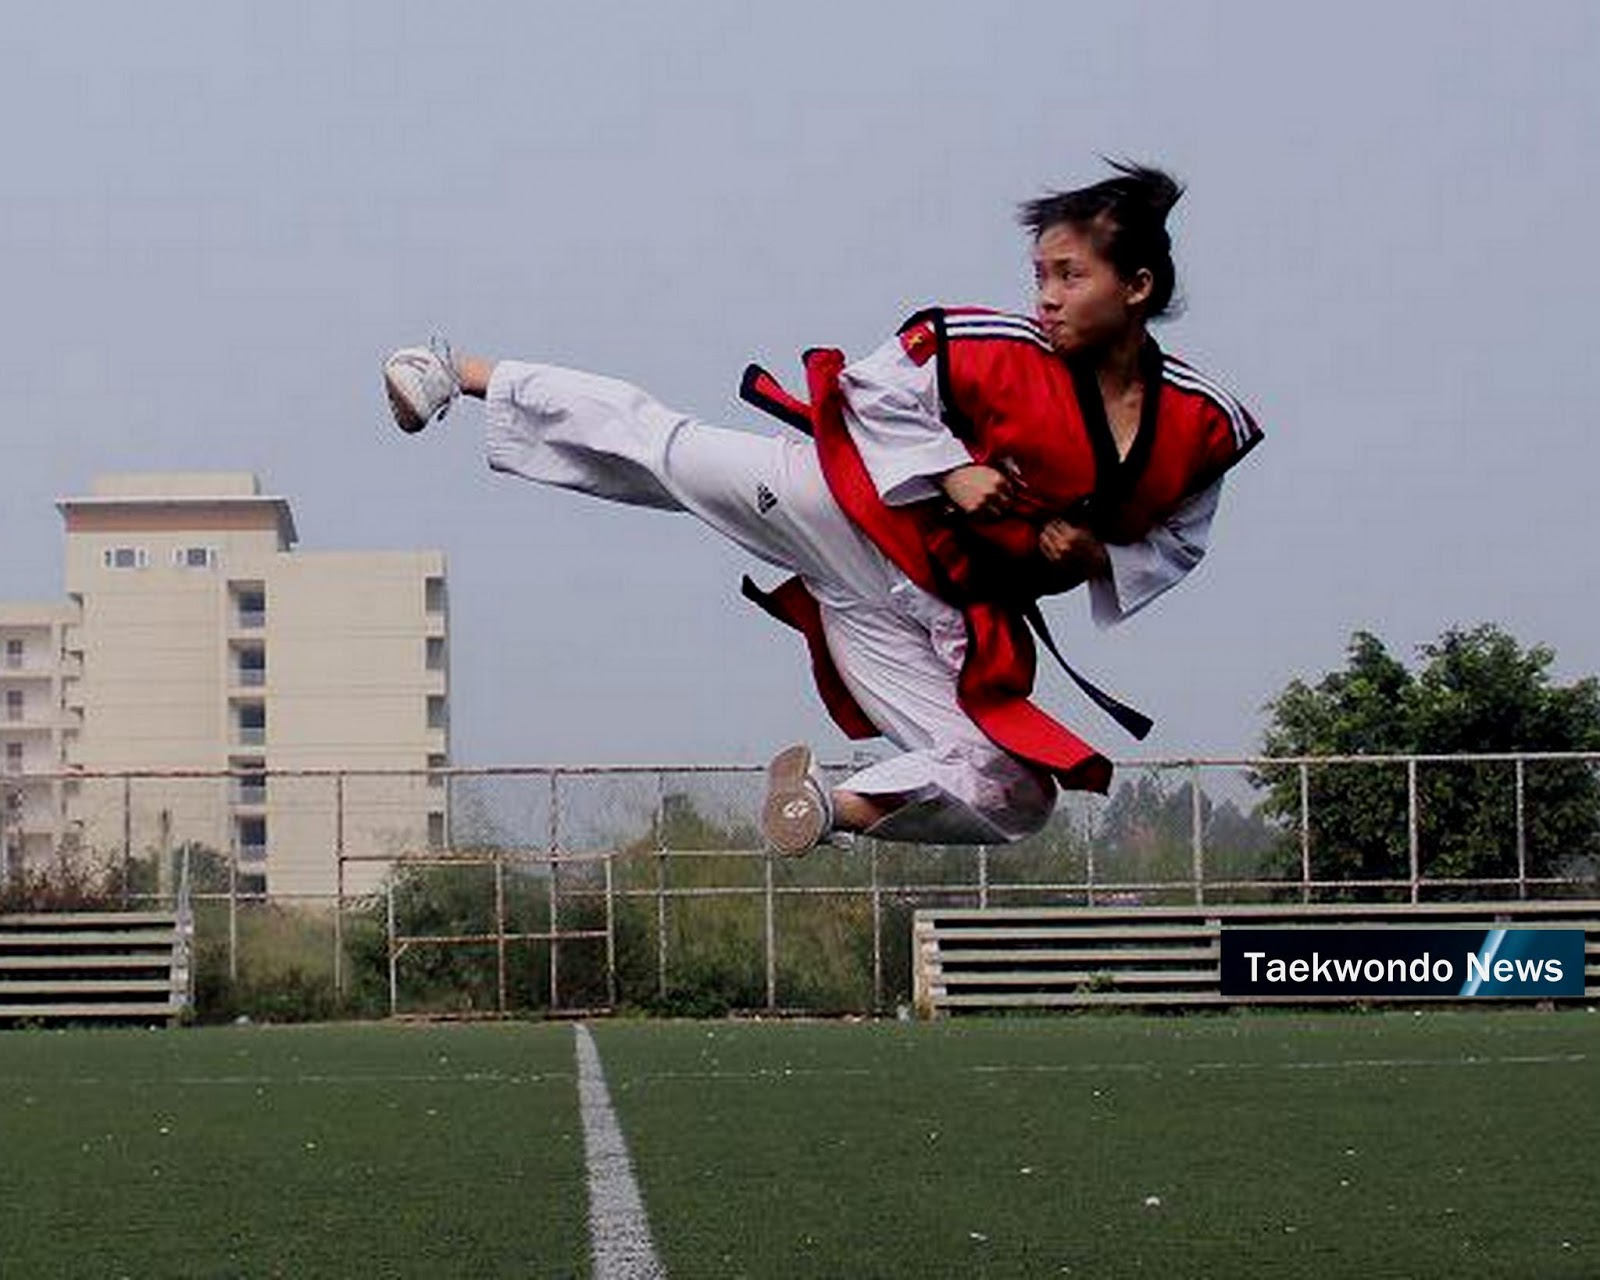 Taekwondo flying side kick